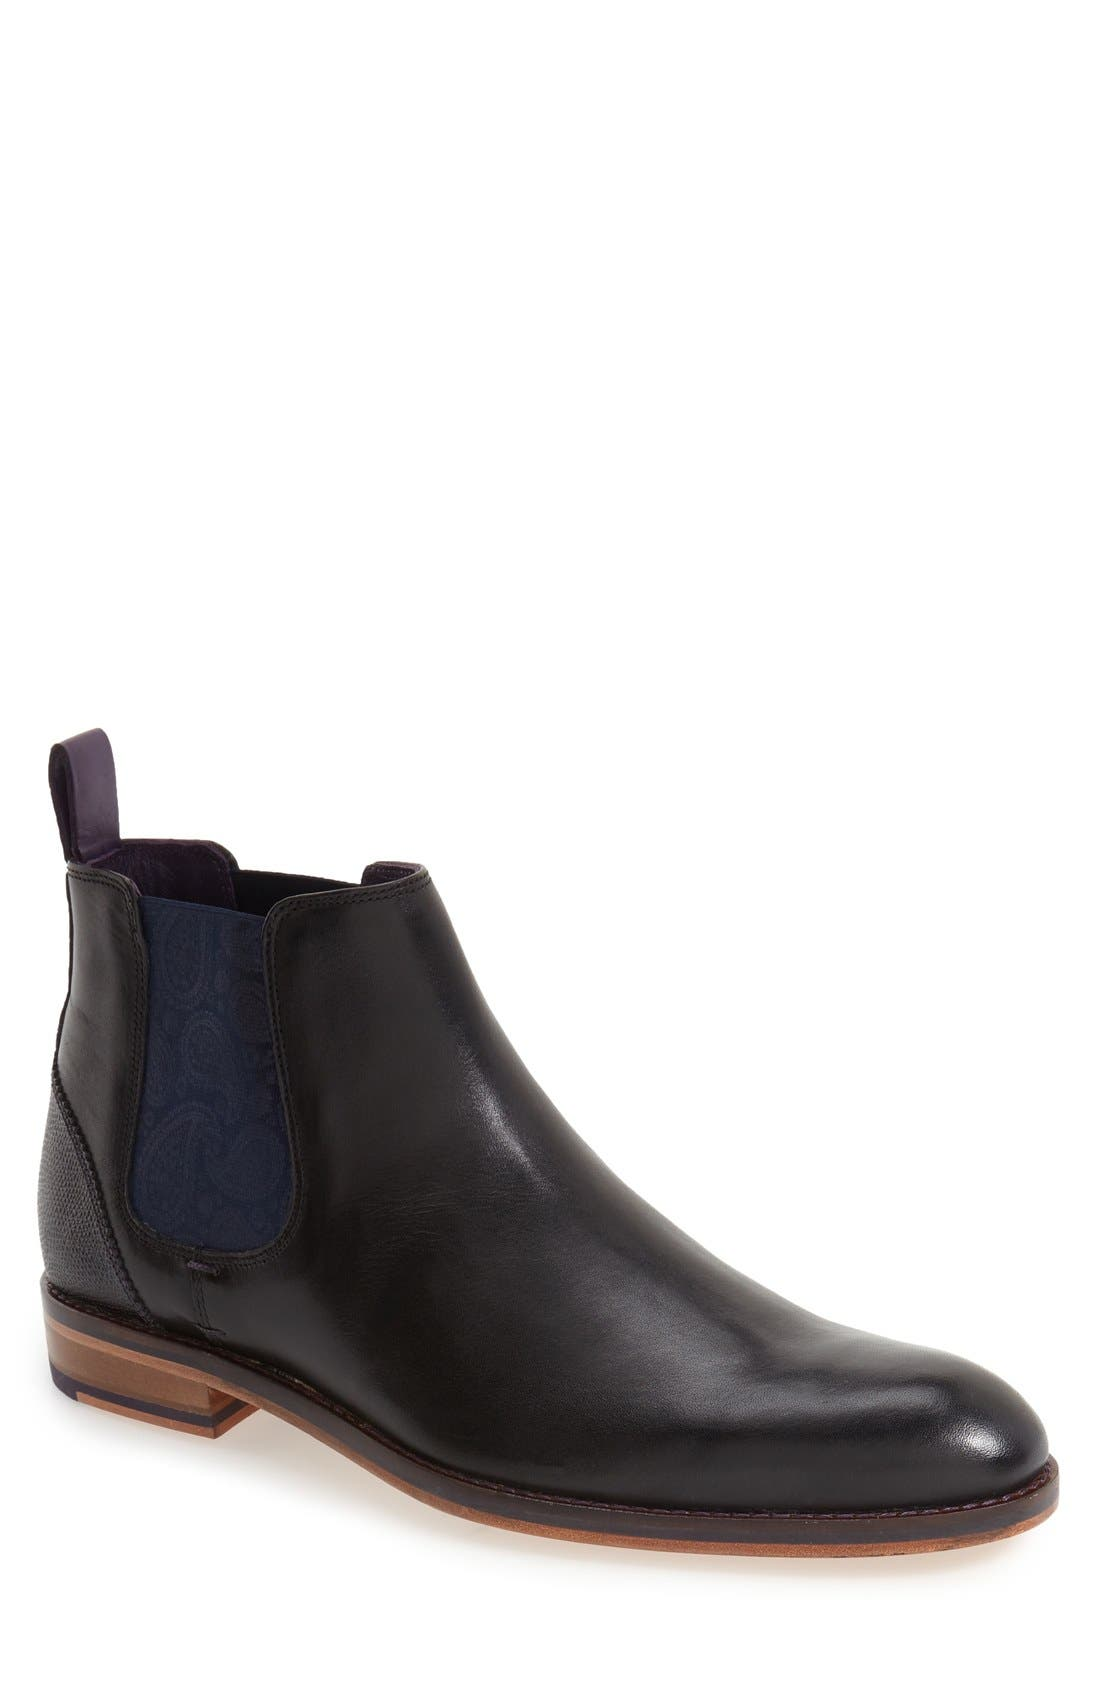 'Camroon 4' Chelsea Boot,                             Main thumbnail 1, color,                             BLACK LEATHER